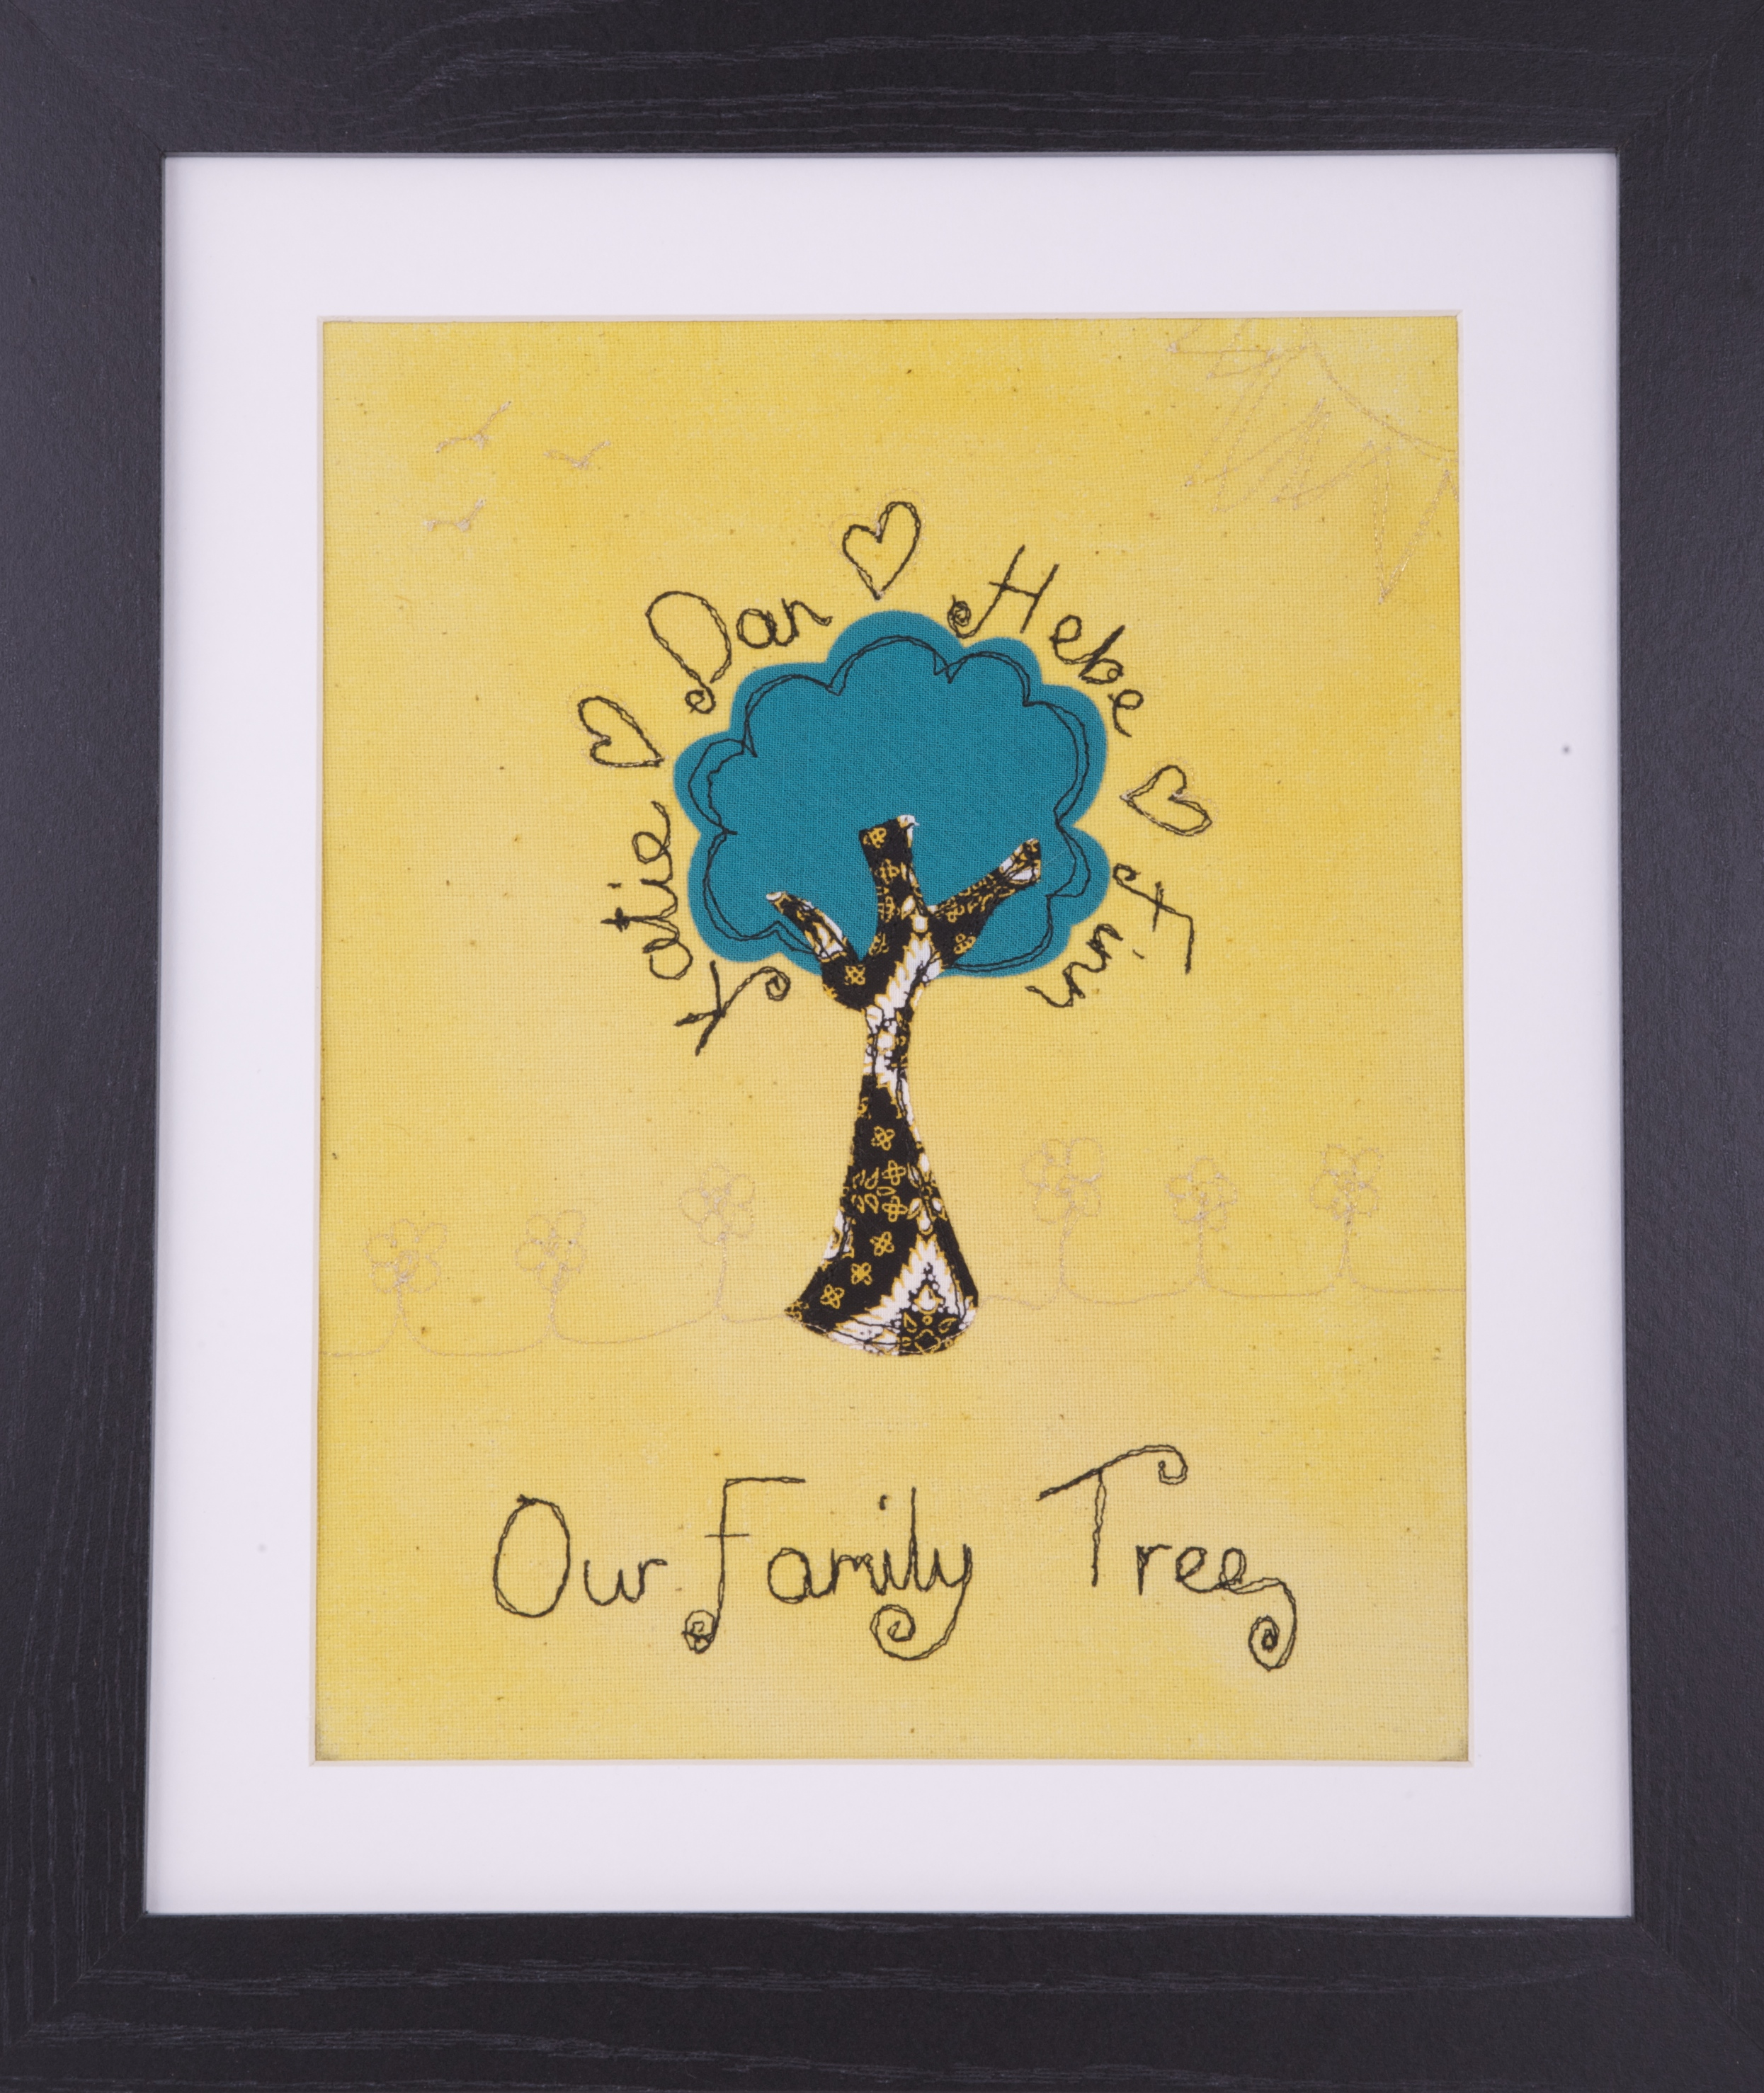 We Are Family! - £35 +p&p